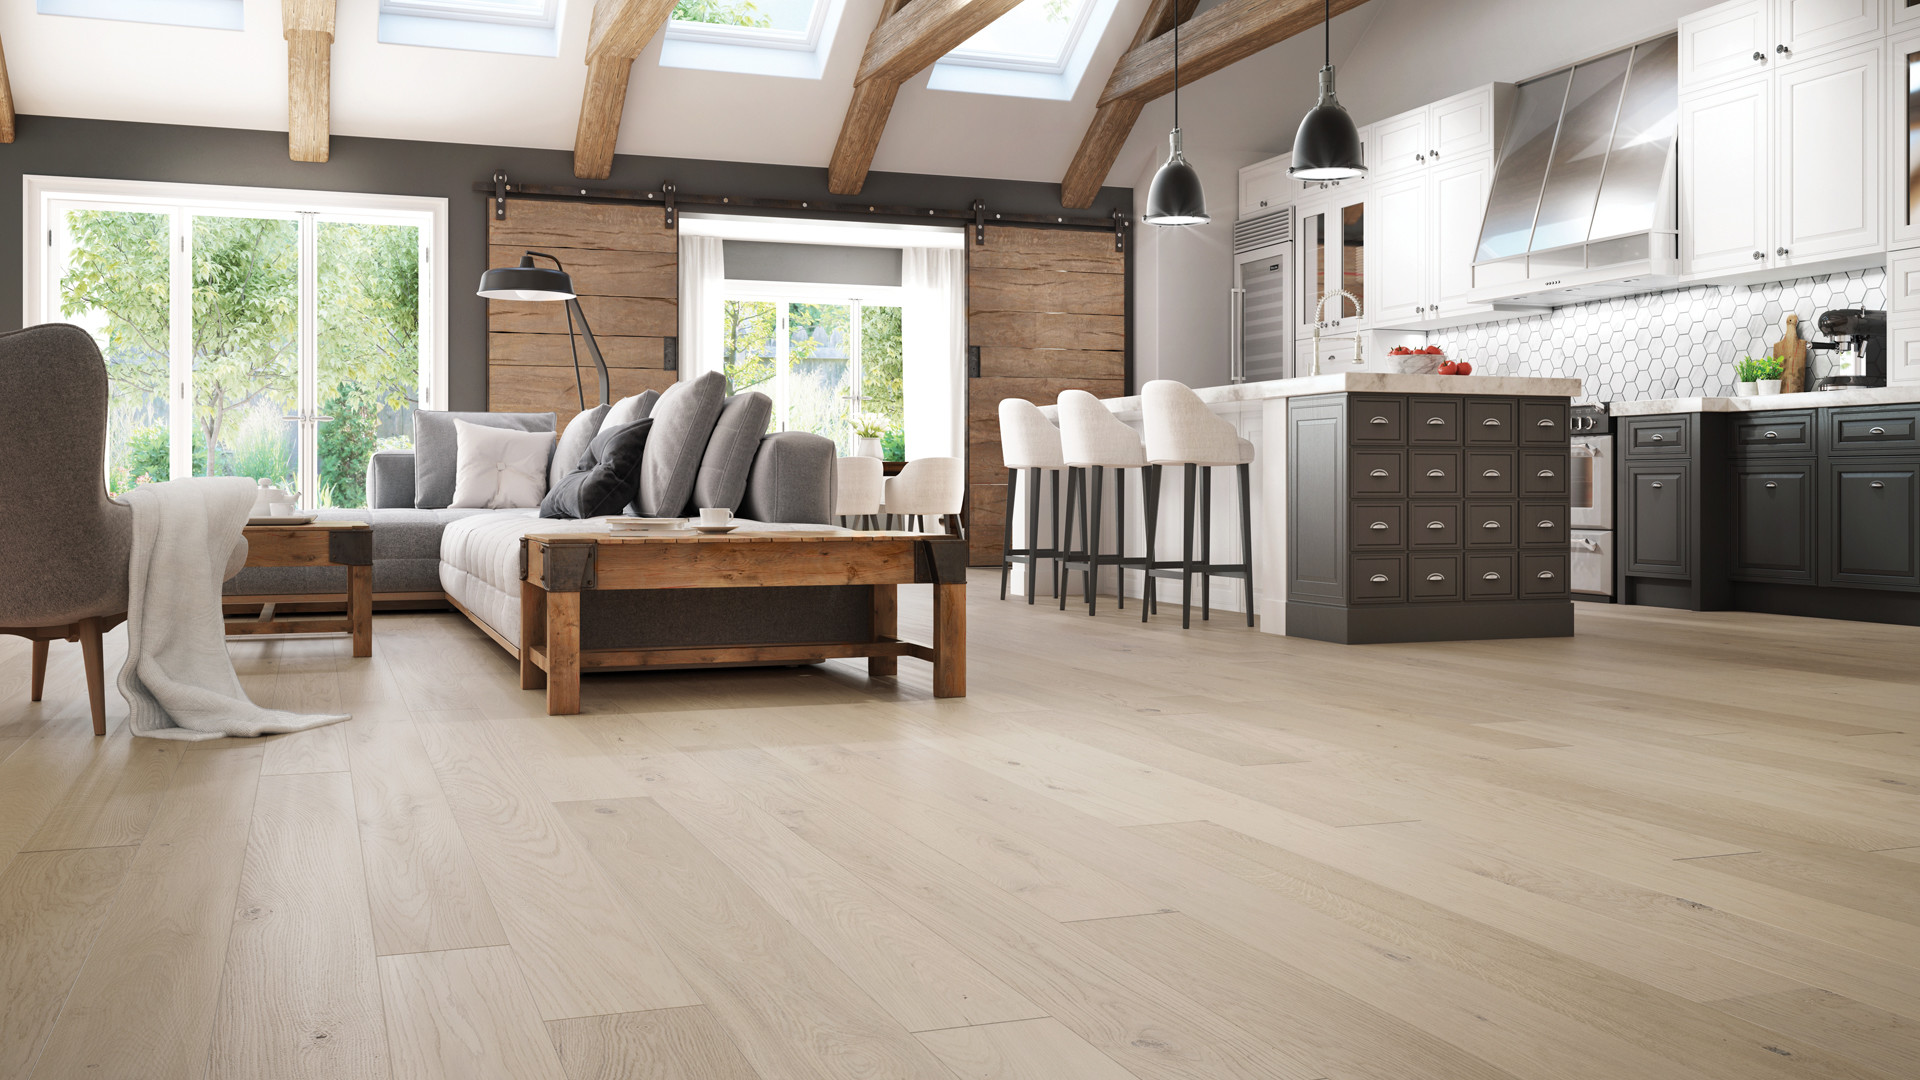 discount hardwood flooring toronto of 4 latest hardwood flooring trends of 2018 lauzon flooring with this technology brings your hardwood floors and well being to a new level by improving indoor air quality by up to 85 and decomposing up to 99 6 of